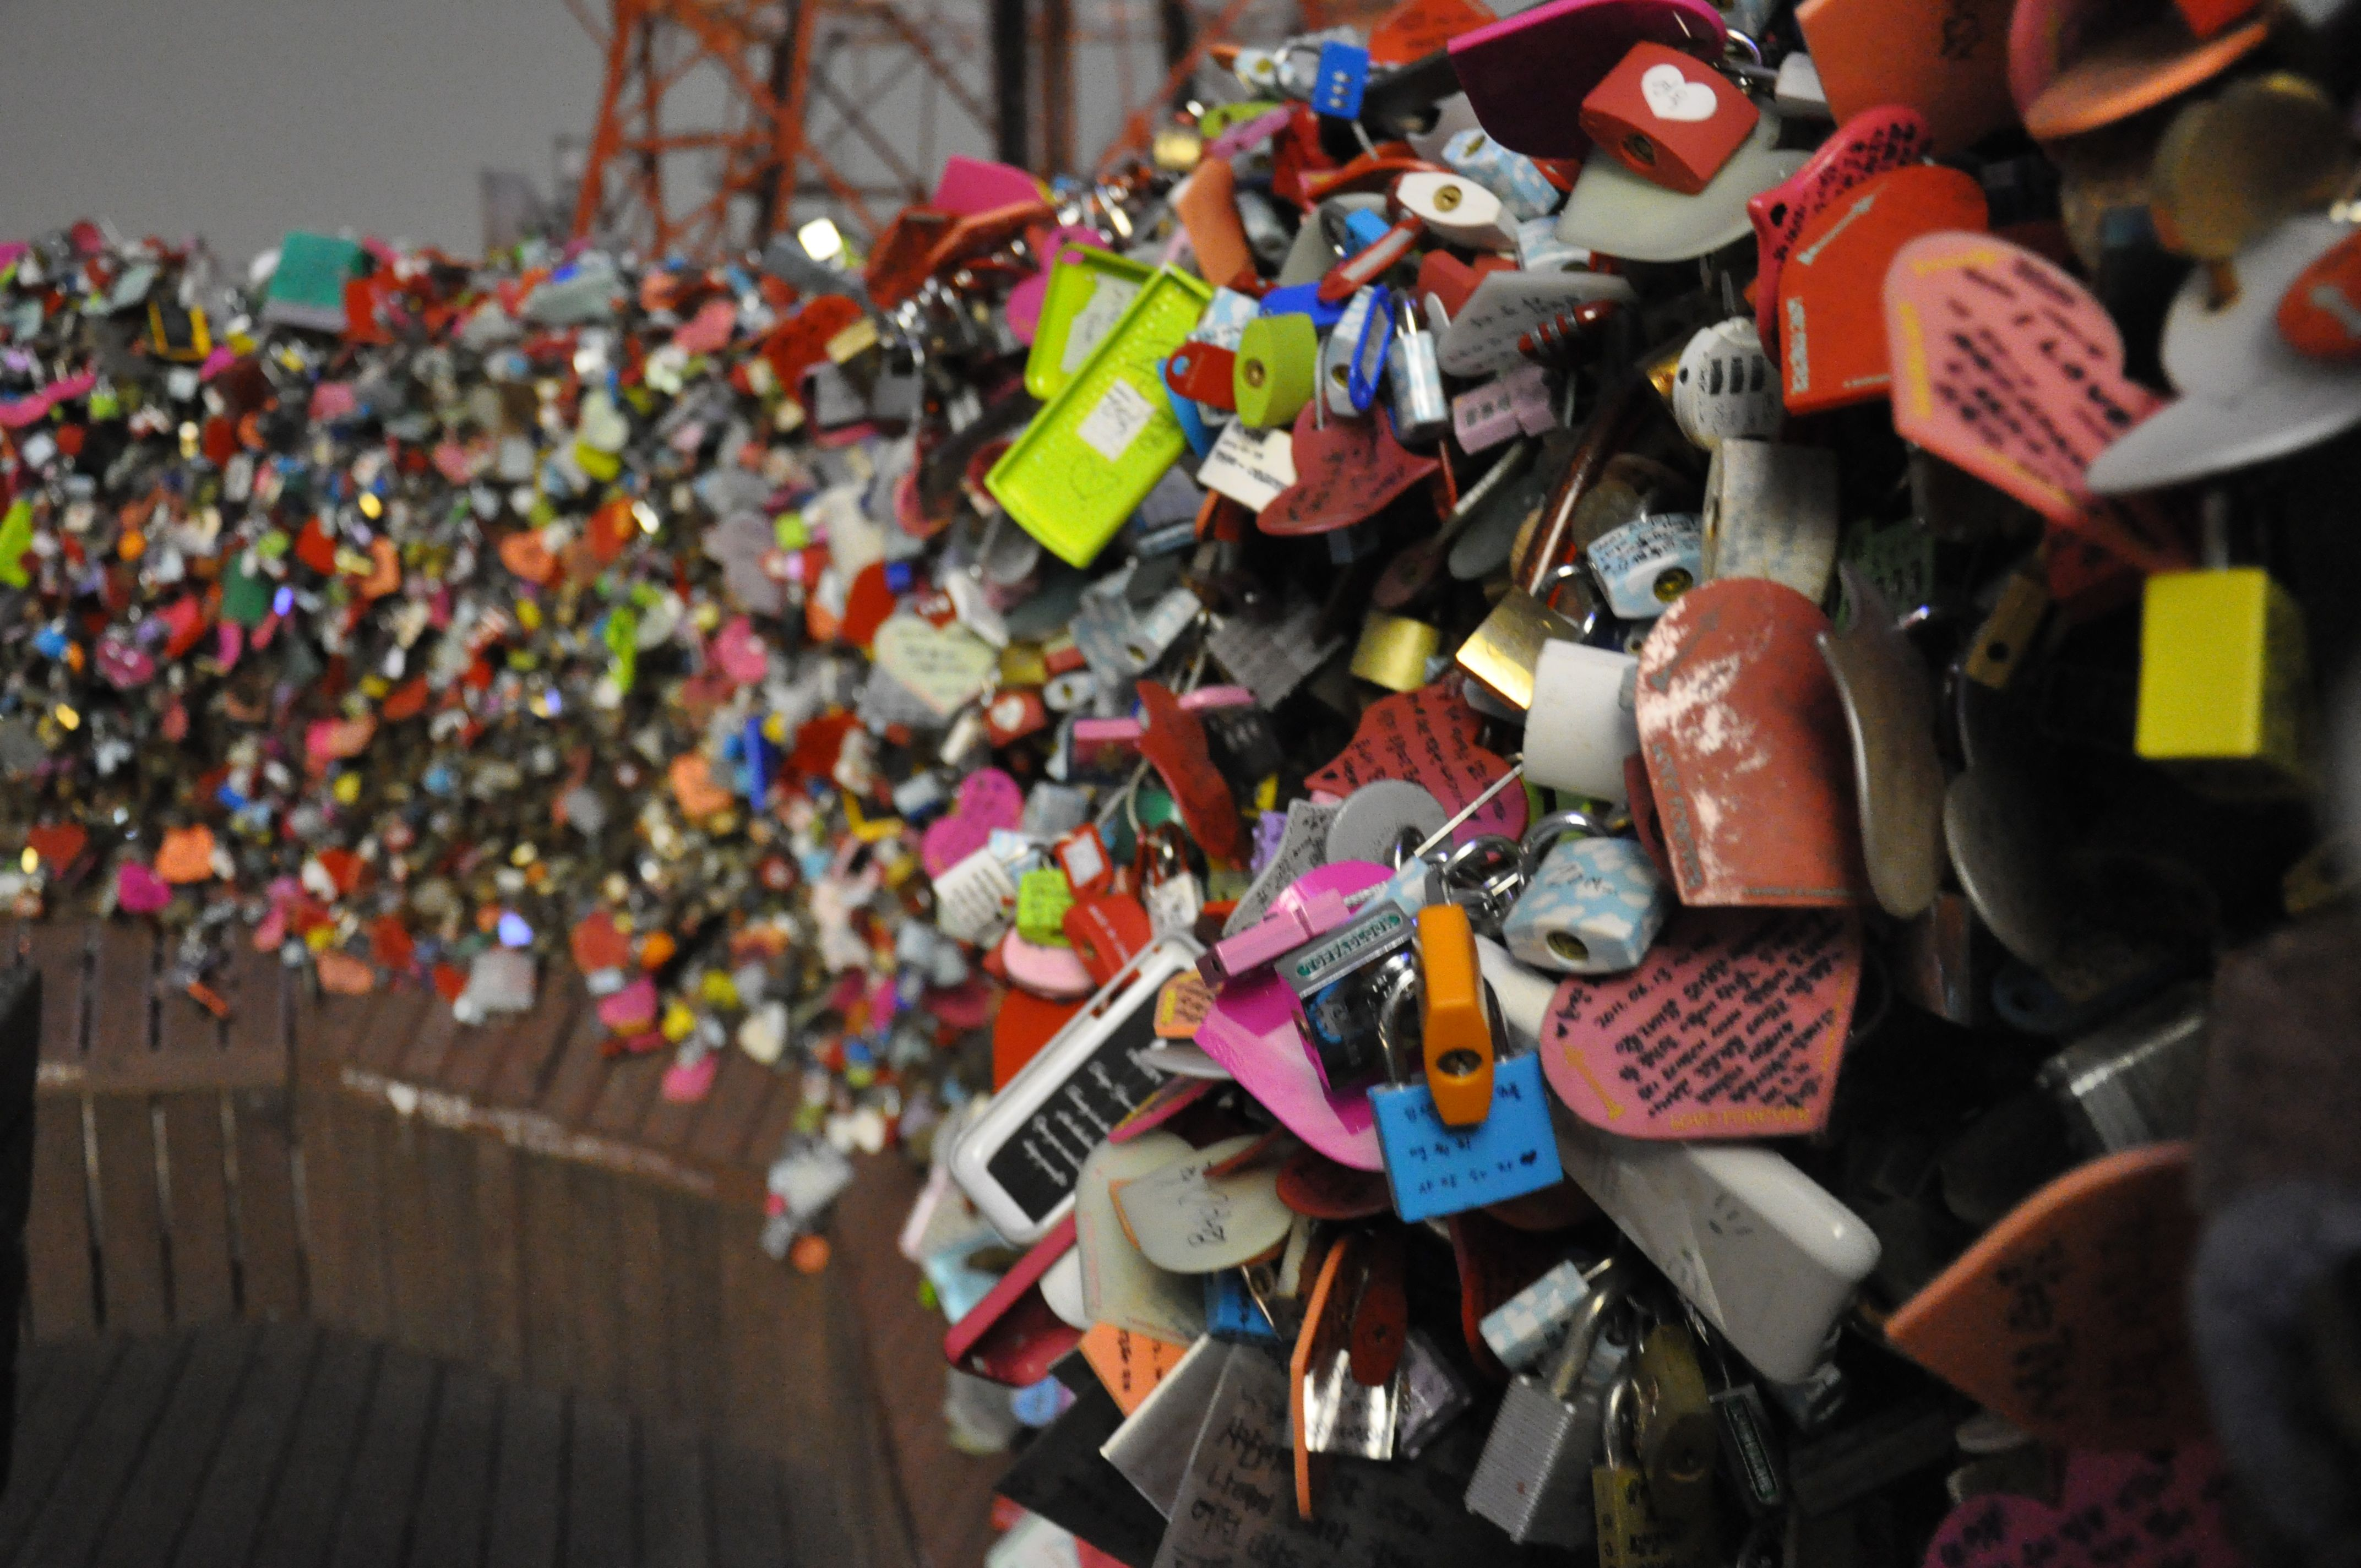 Namsan Tower  is a place filled with thousands and thousands of locks. Each belongs to a couple, accompanied with a message of their love. It is said that if a couple secures their lock on the rails of the tower and then tosses they key far down below – they will be together forever.